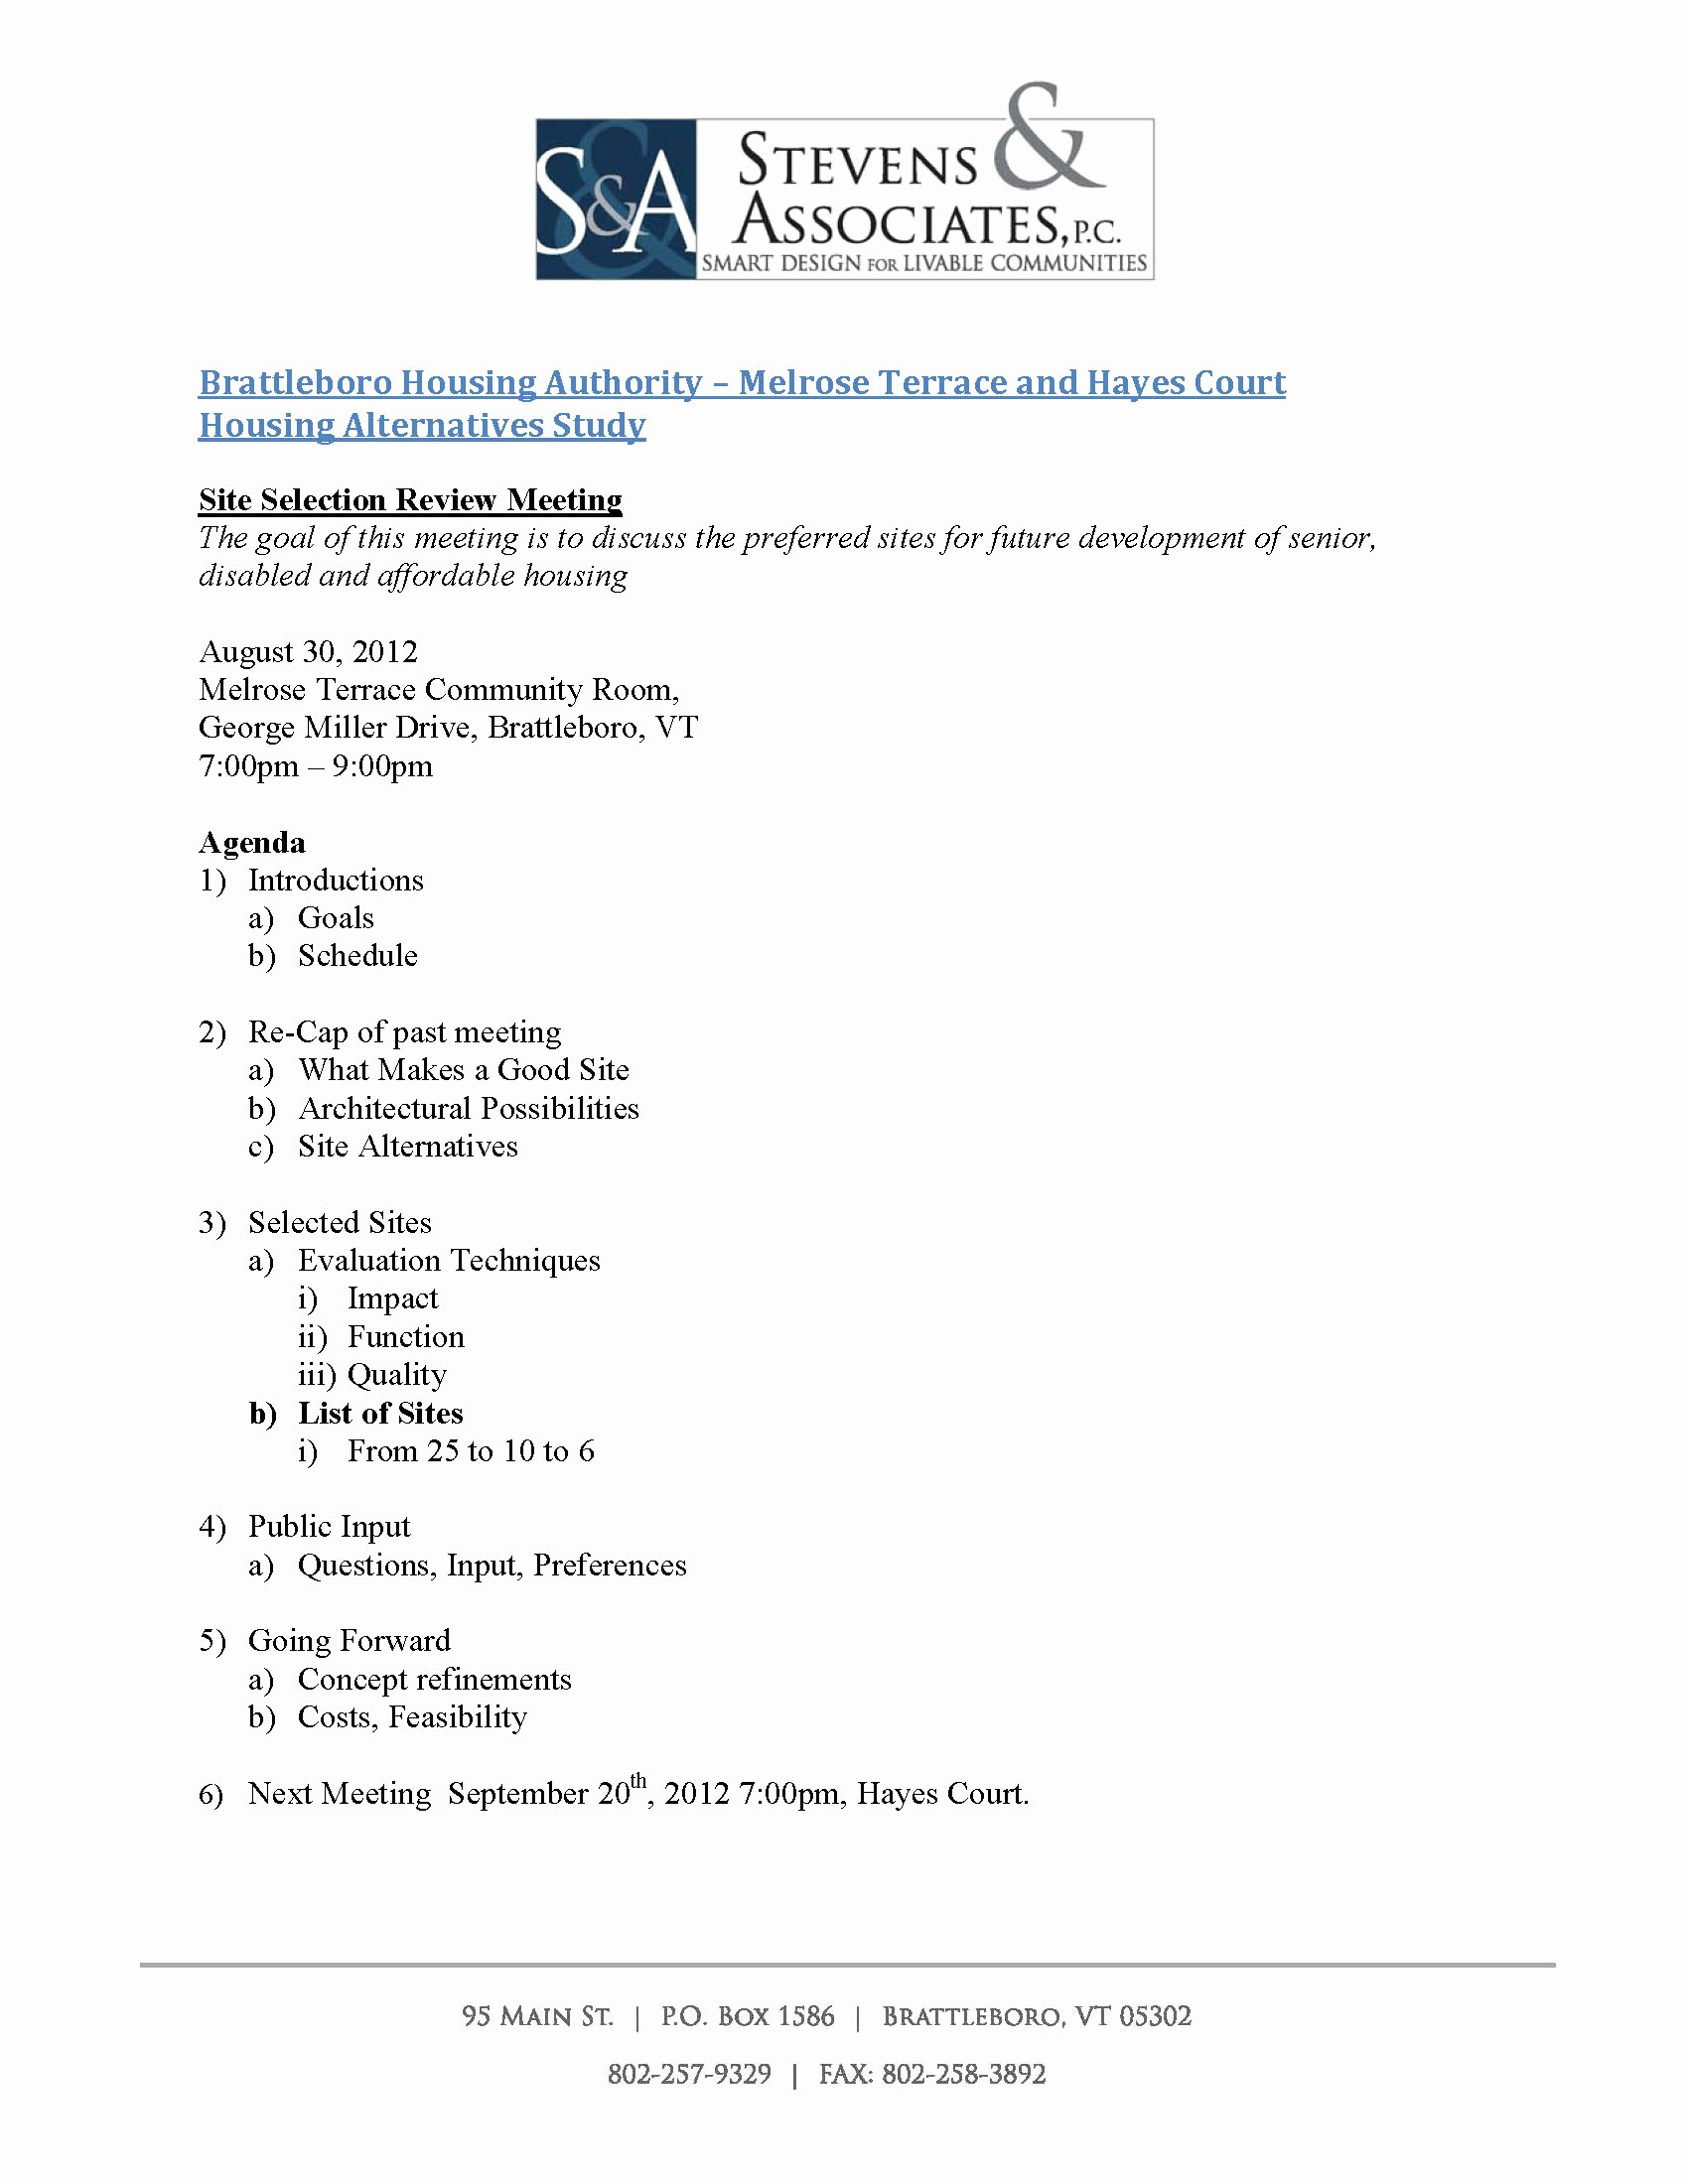 Off Site Meeting Agenda Template Beautiful Public Munity Meeting 3 – Preferred Sites Agenda